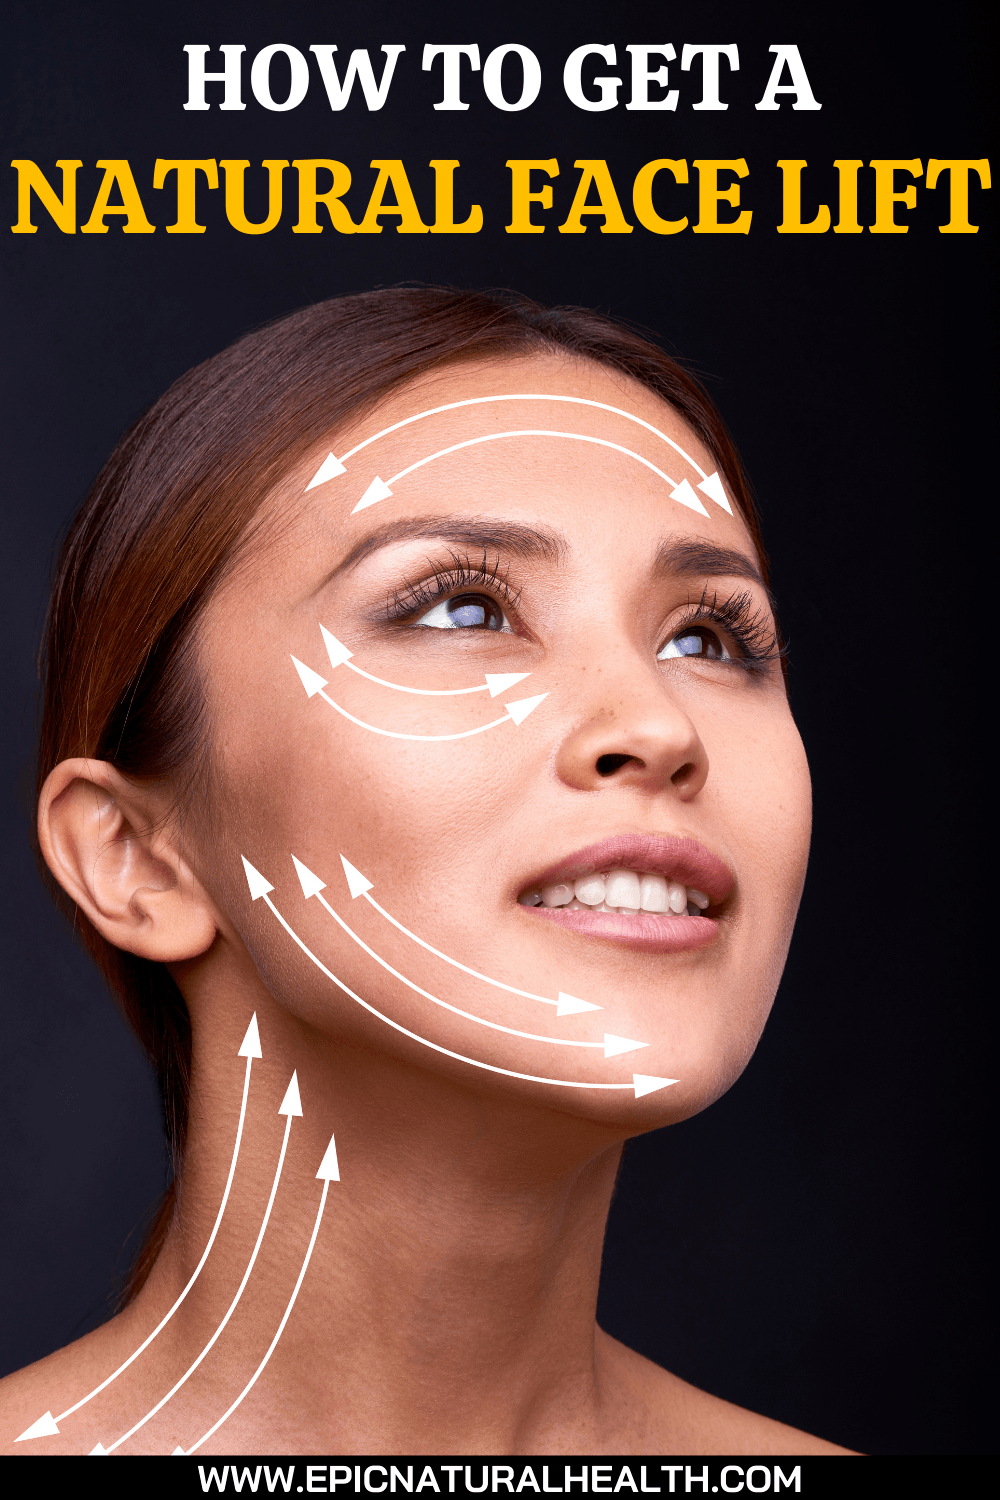 How to get a natural face lift